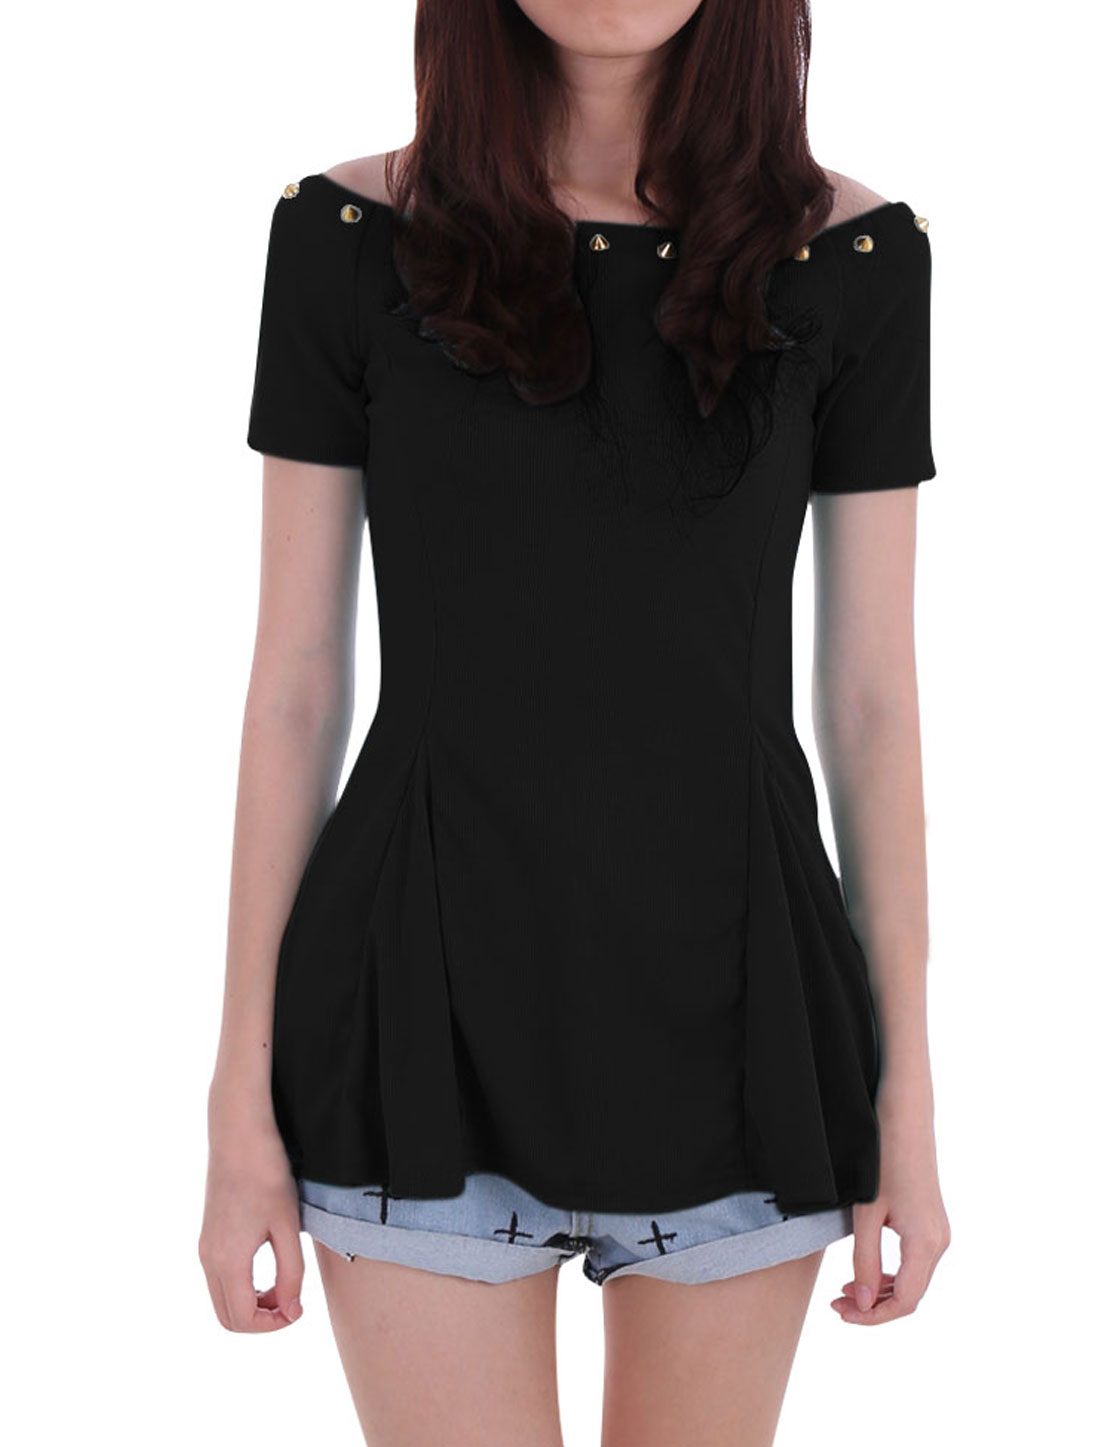 Ladies Chic Boat Neck Short Sleeve Rivets Decor Black Peplum Tops XS